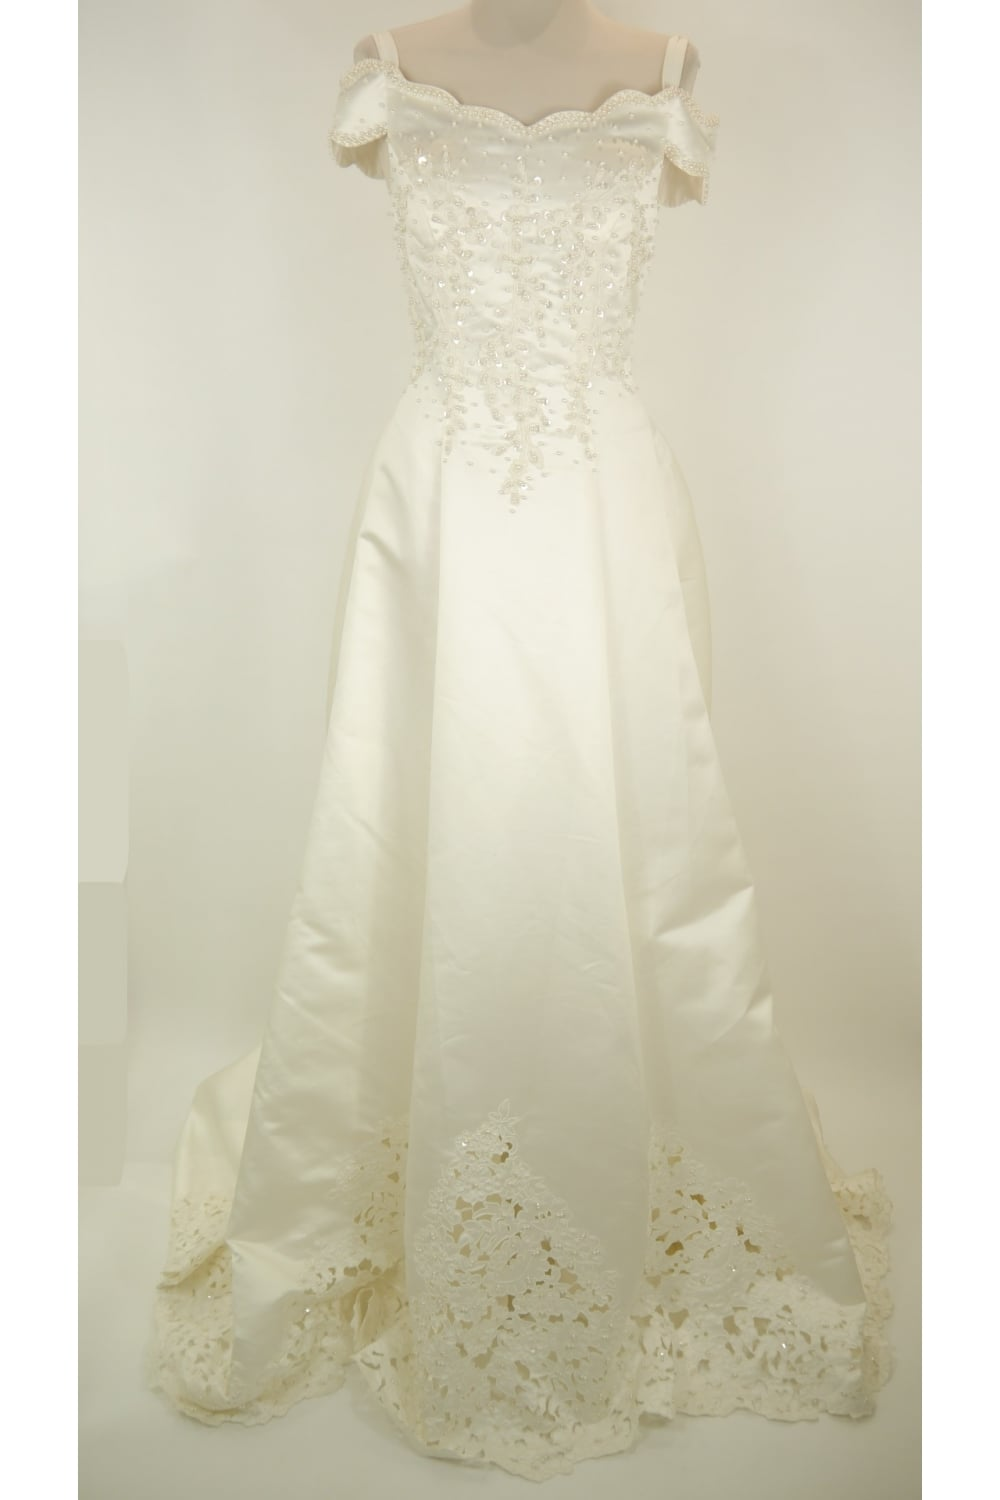 Ava ivory strapless wedding dress clearance sale. Full skirt and train